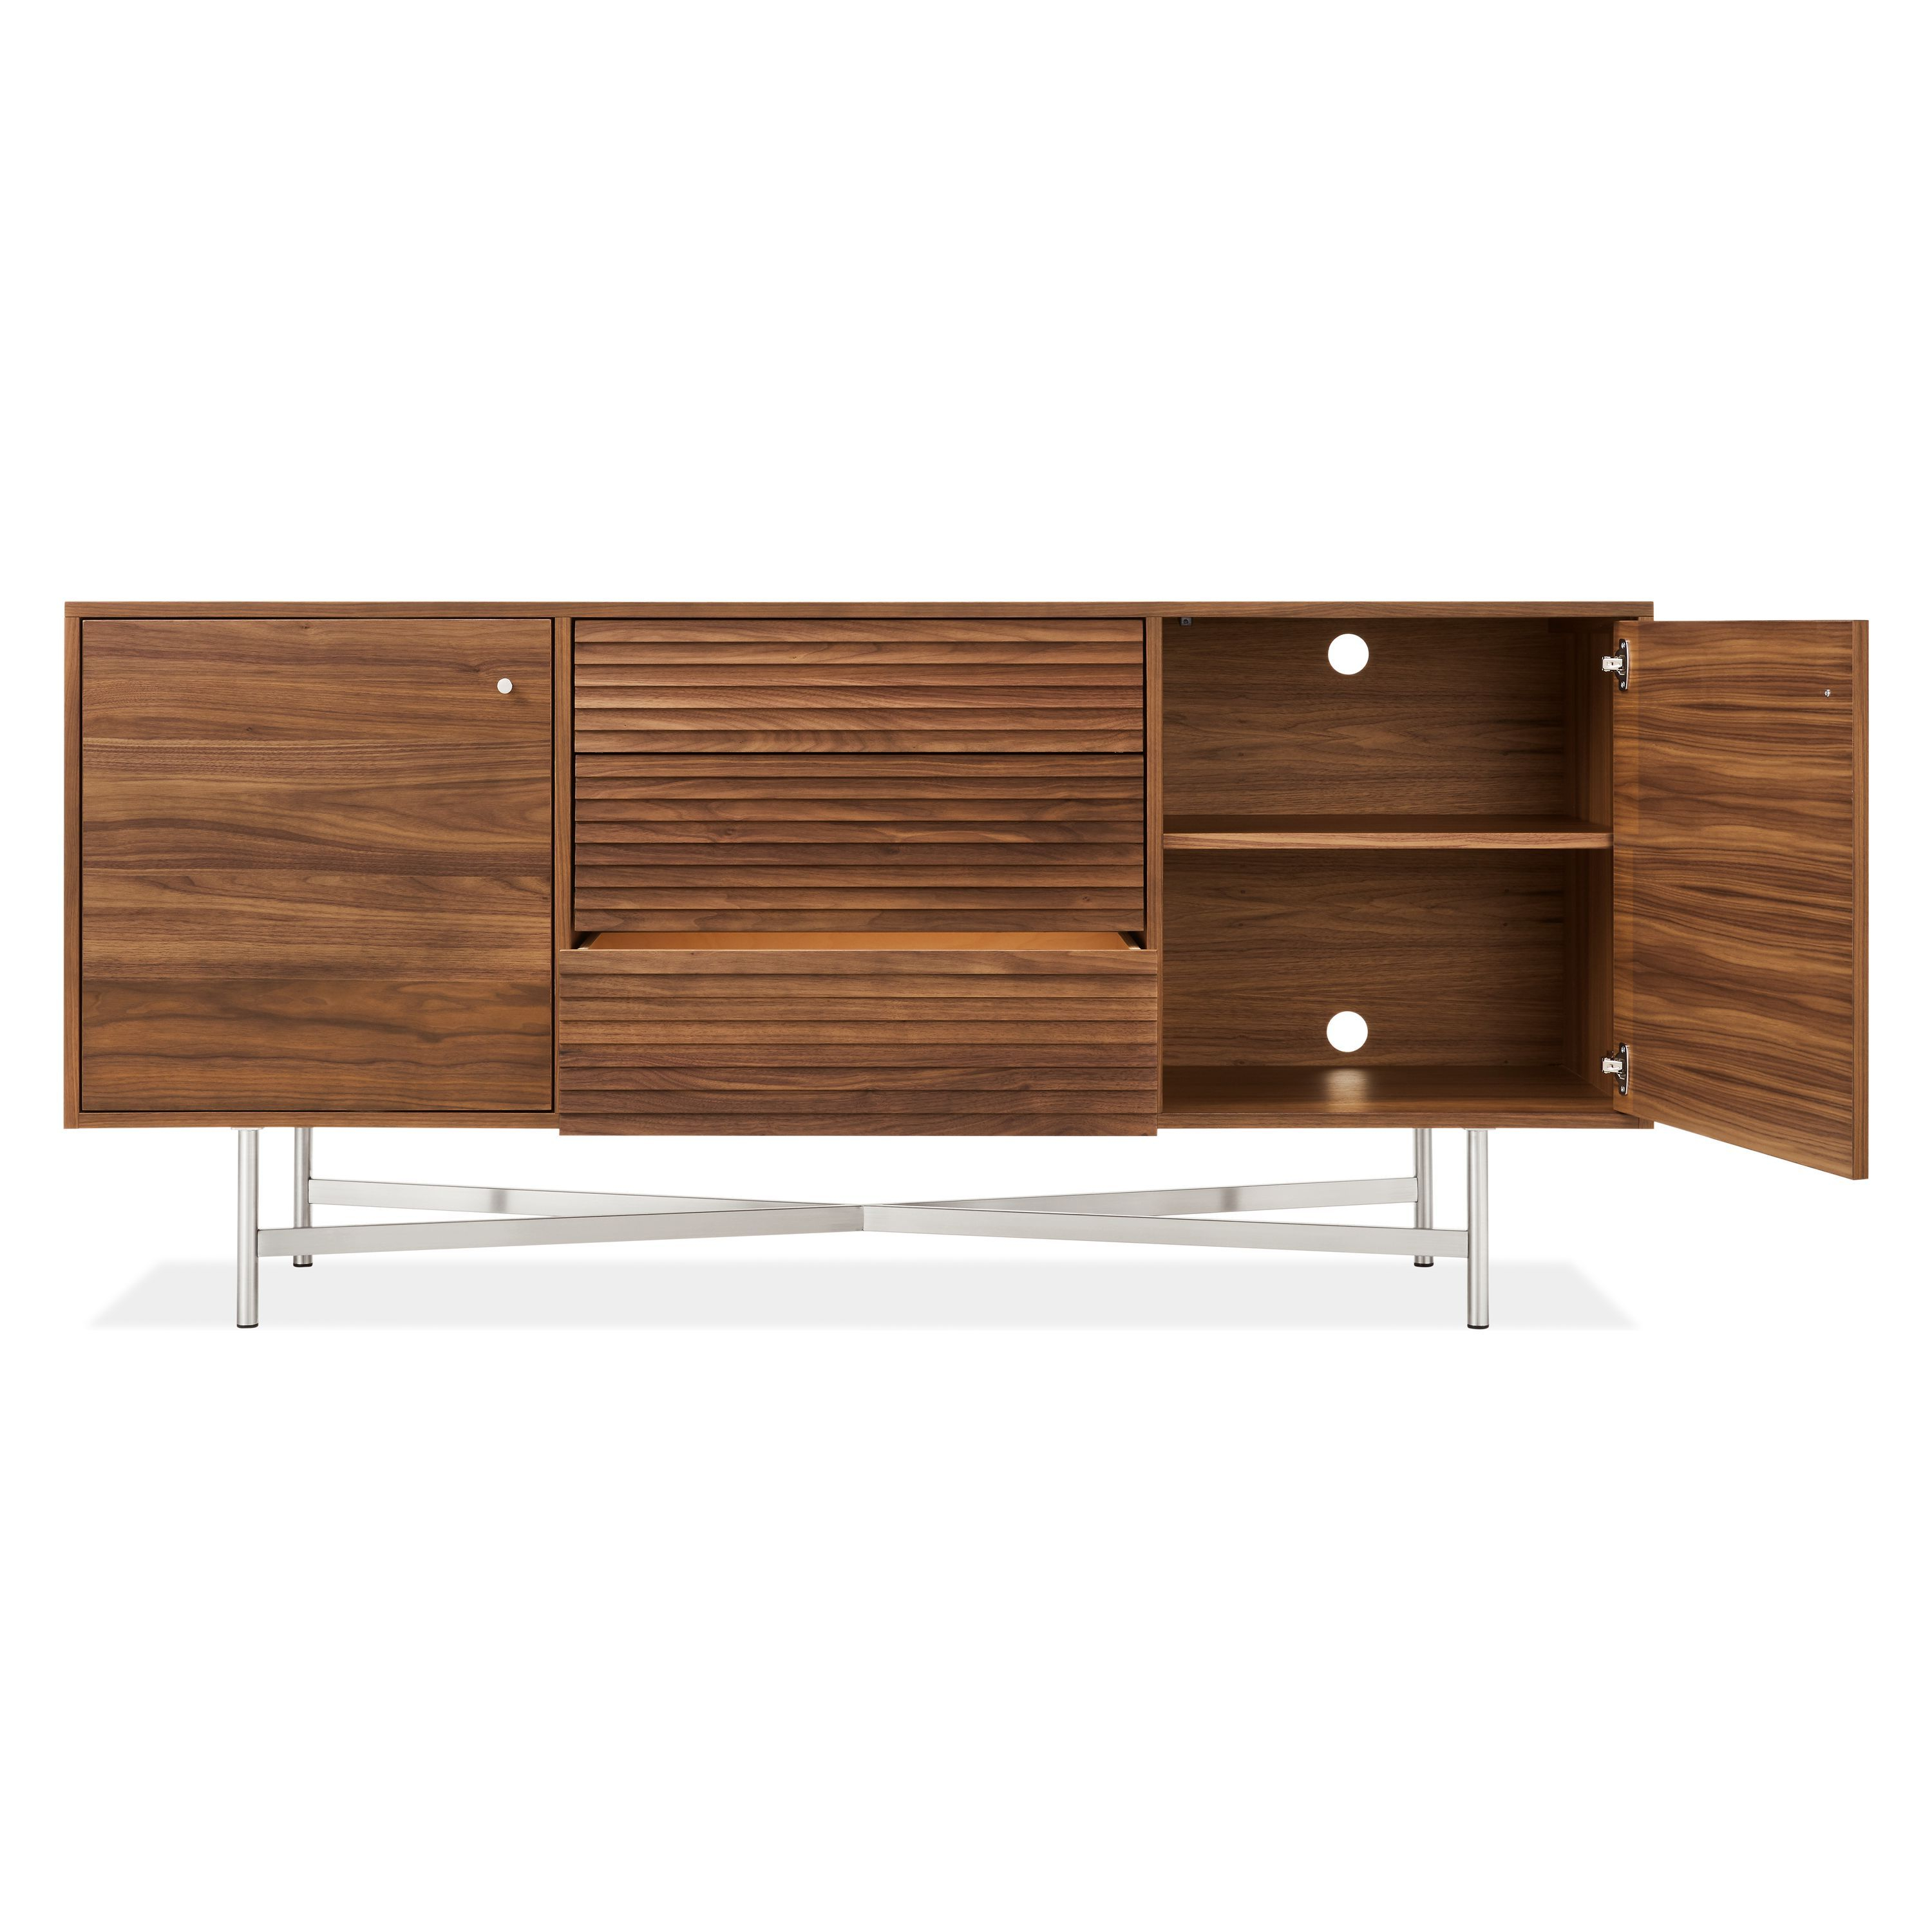 Adrian Storage Cabinets   Products   Entryway Cabinet Throughout Stephen Credenzas (View 5 of 20)